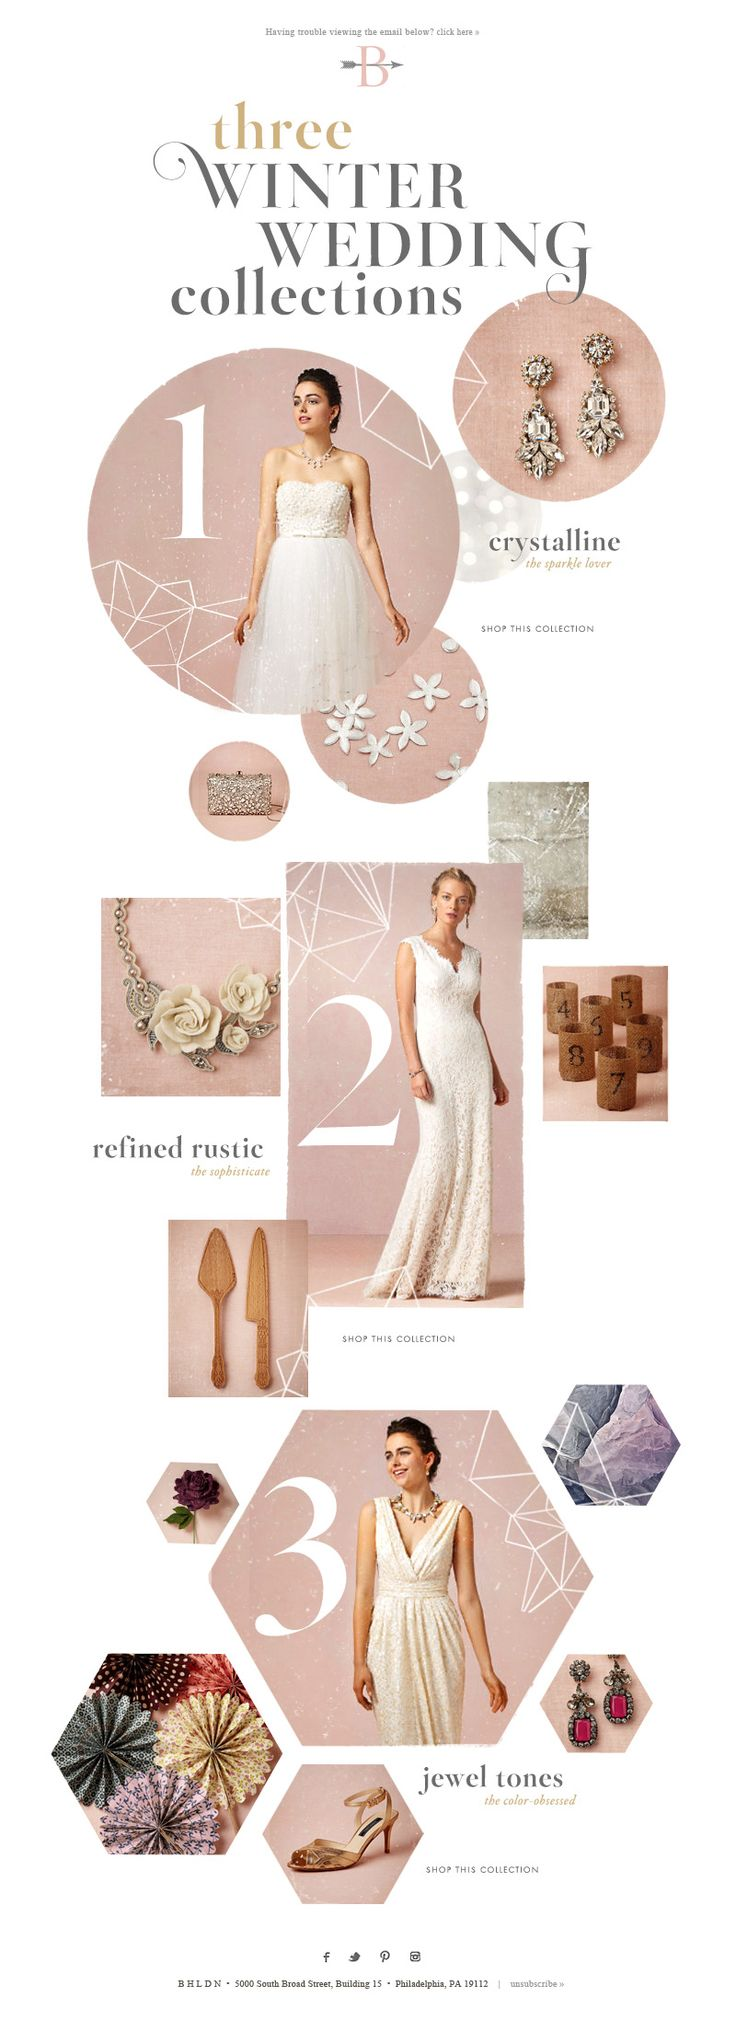 Winter Wedding Collections | BHLDN | Anthropologie Weddings | Design | November 2013 | Editorial | Email